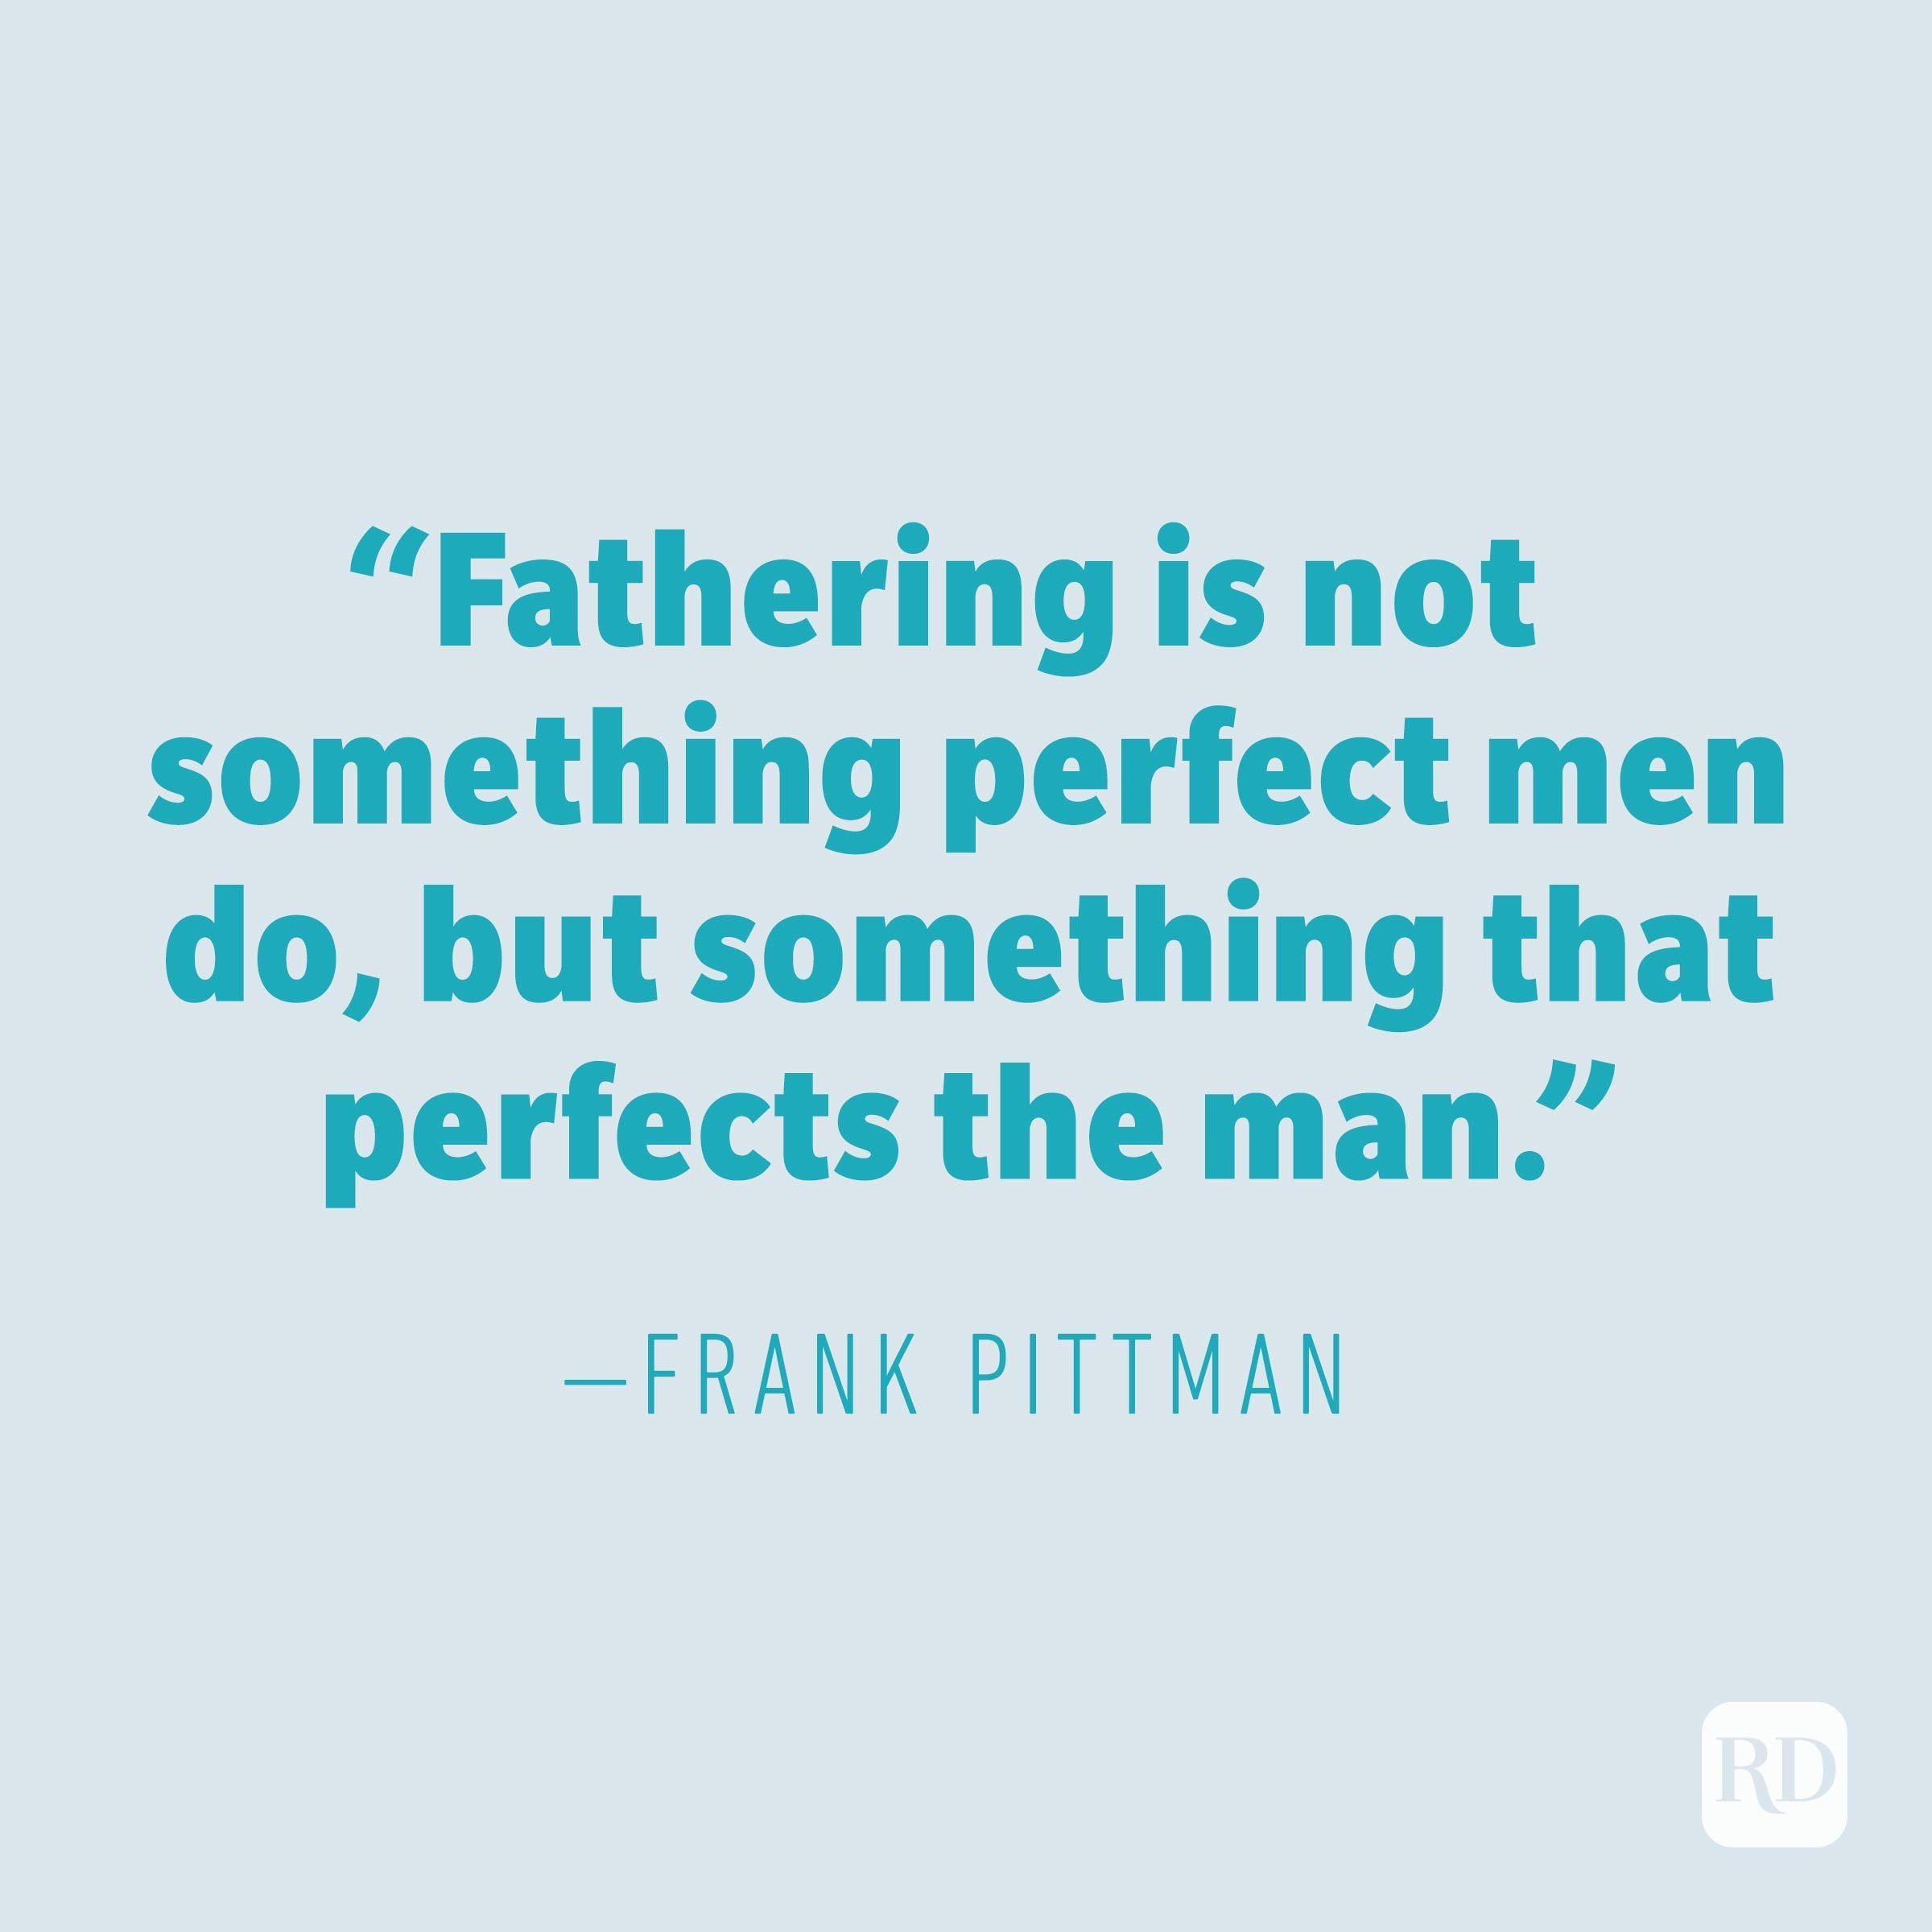 """Fathering is not something perfect men do, but something that perfects the man."" —FRANK PITTMAN"